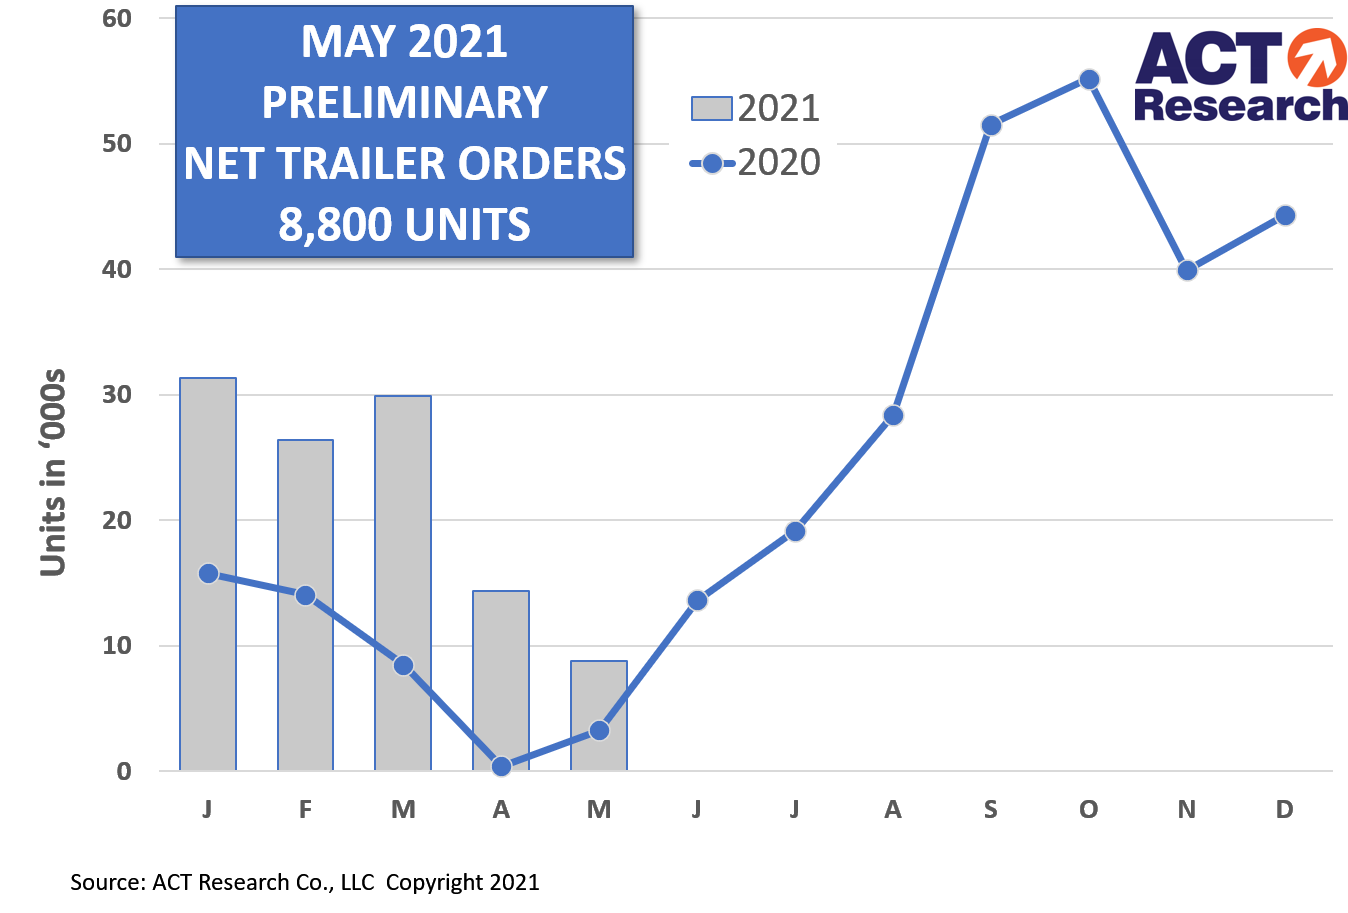 act research may 2021 prelim net trailer order graph